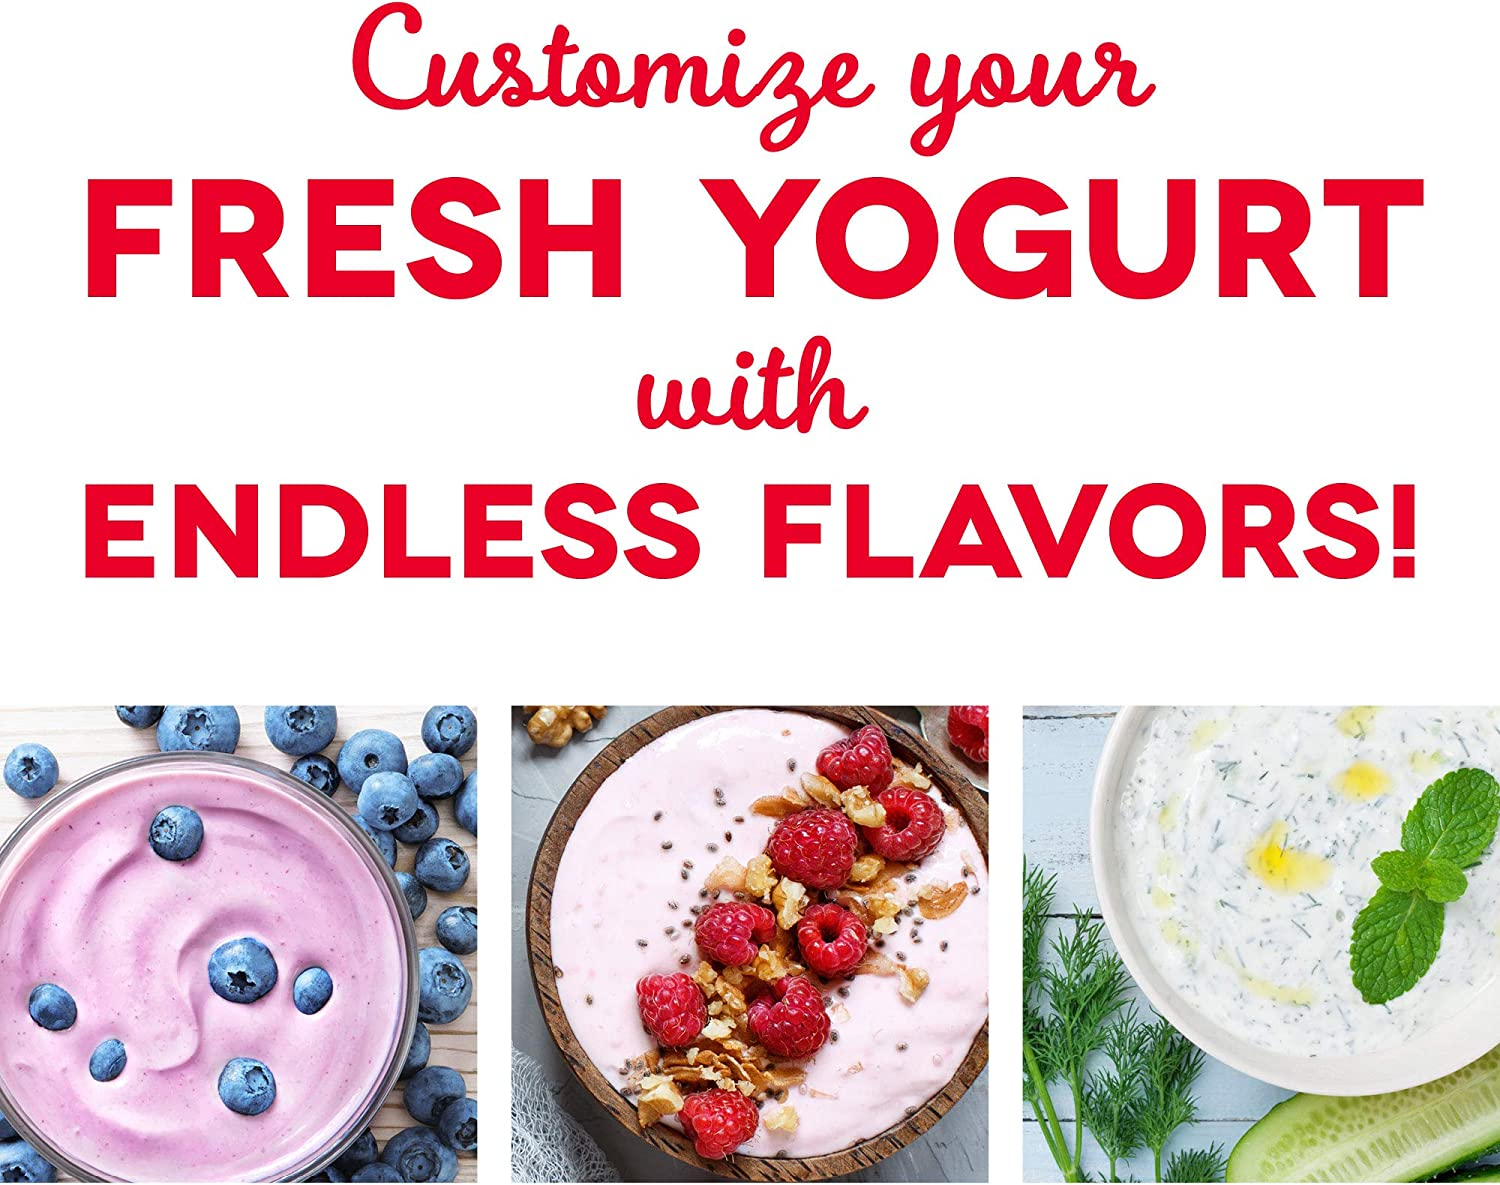 How does a yogurt maker work? Discover your own flavor